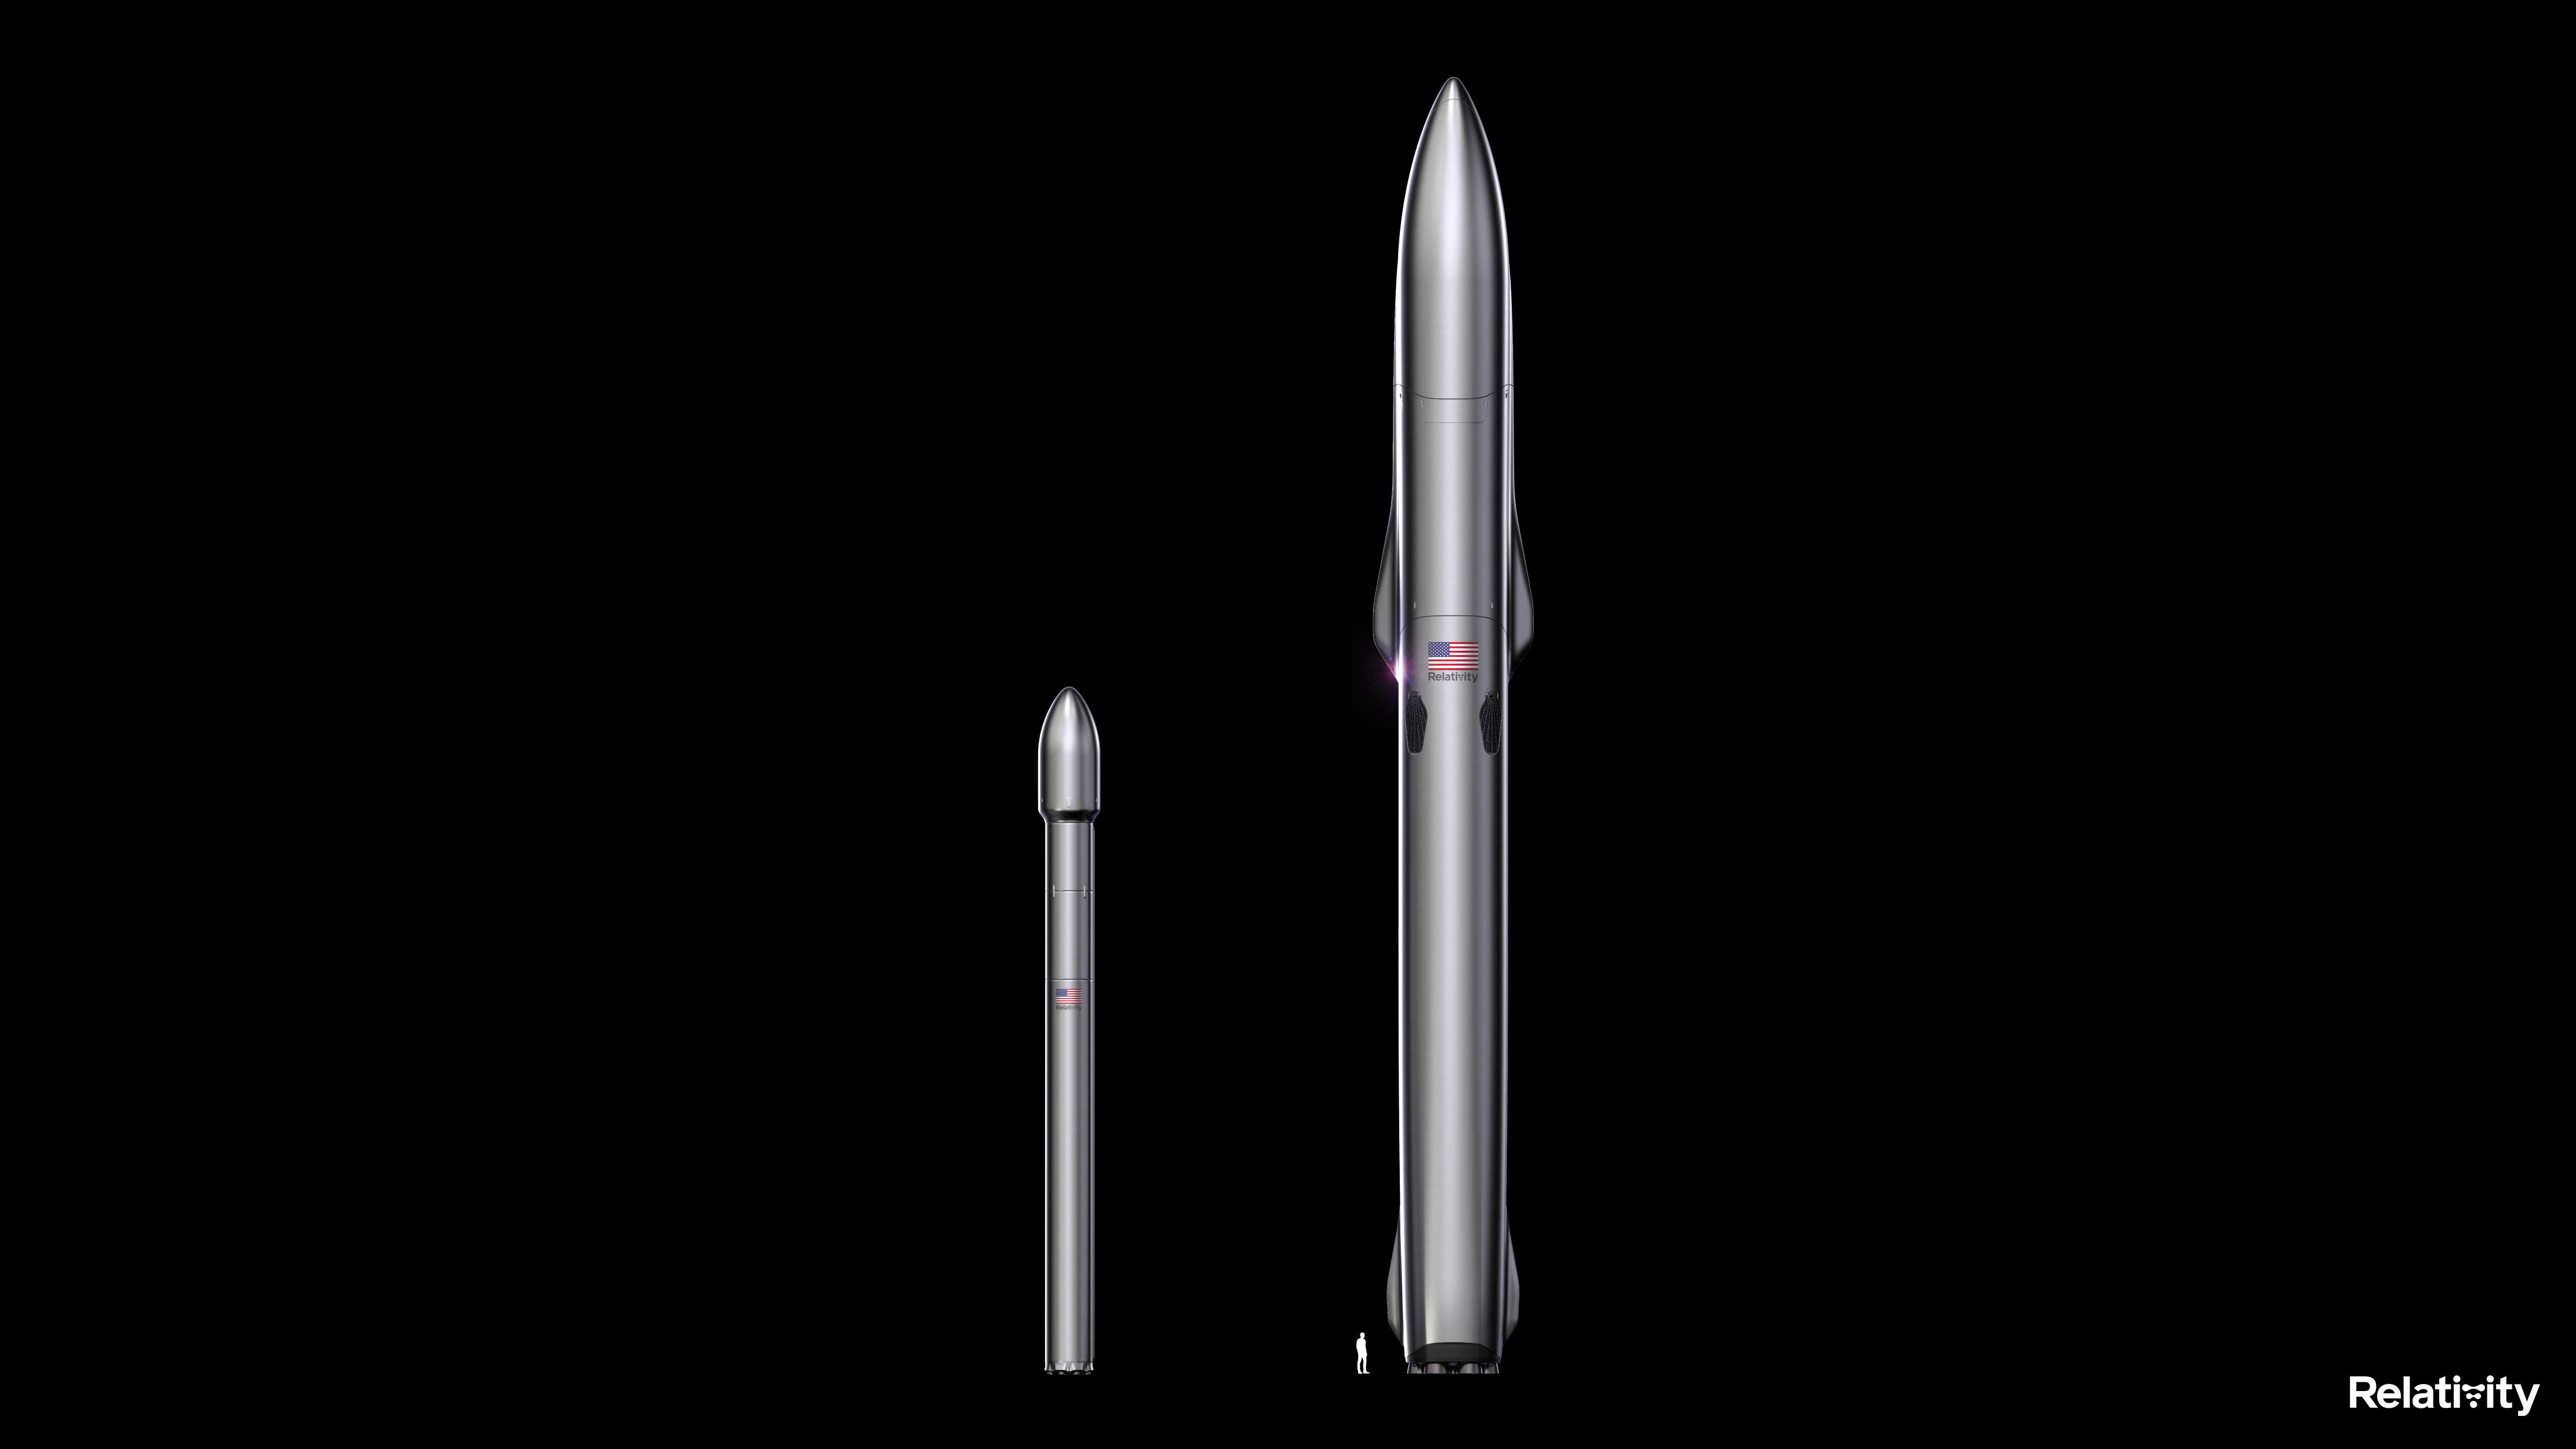 Left: The Terran 1 rocket. Right: The Terran R rocket with 20x payload capacity. Image via Relativity Space.